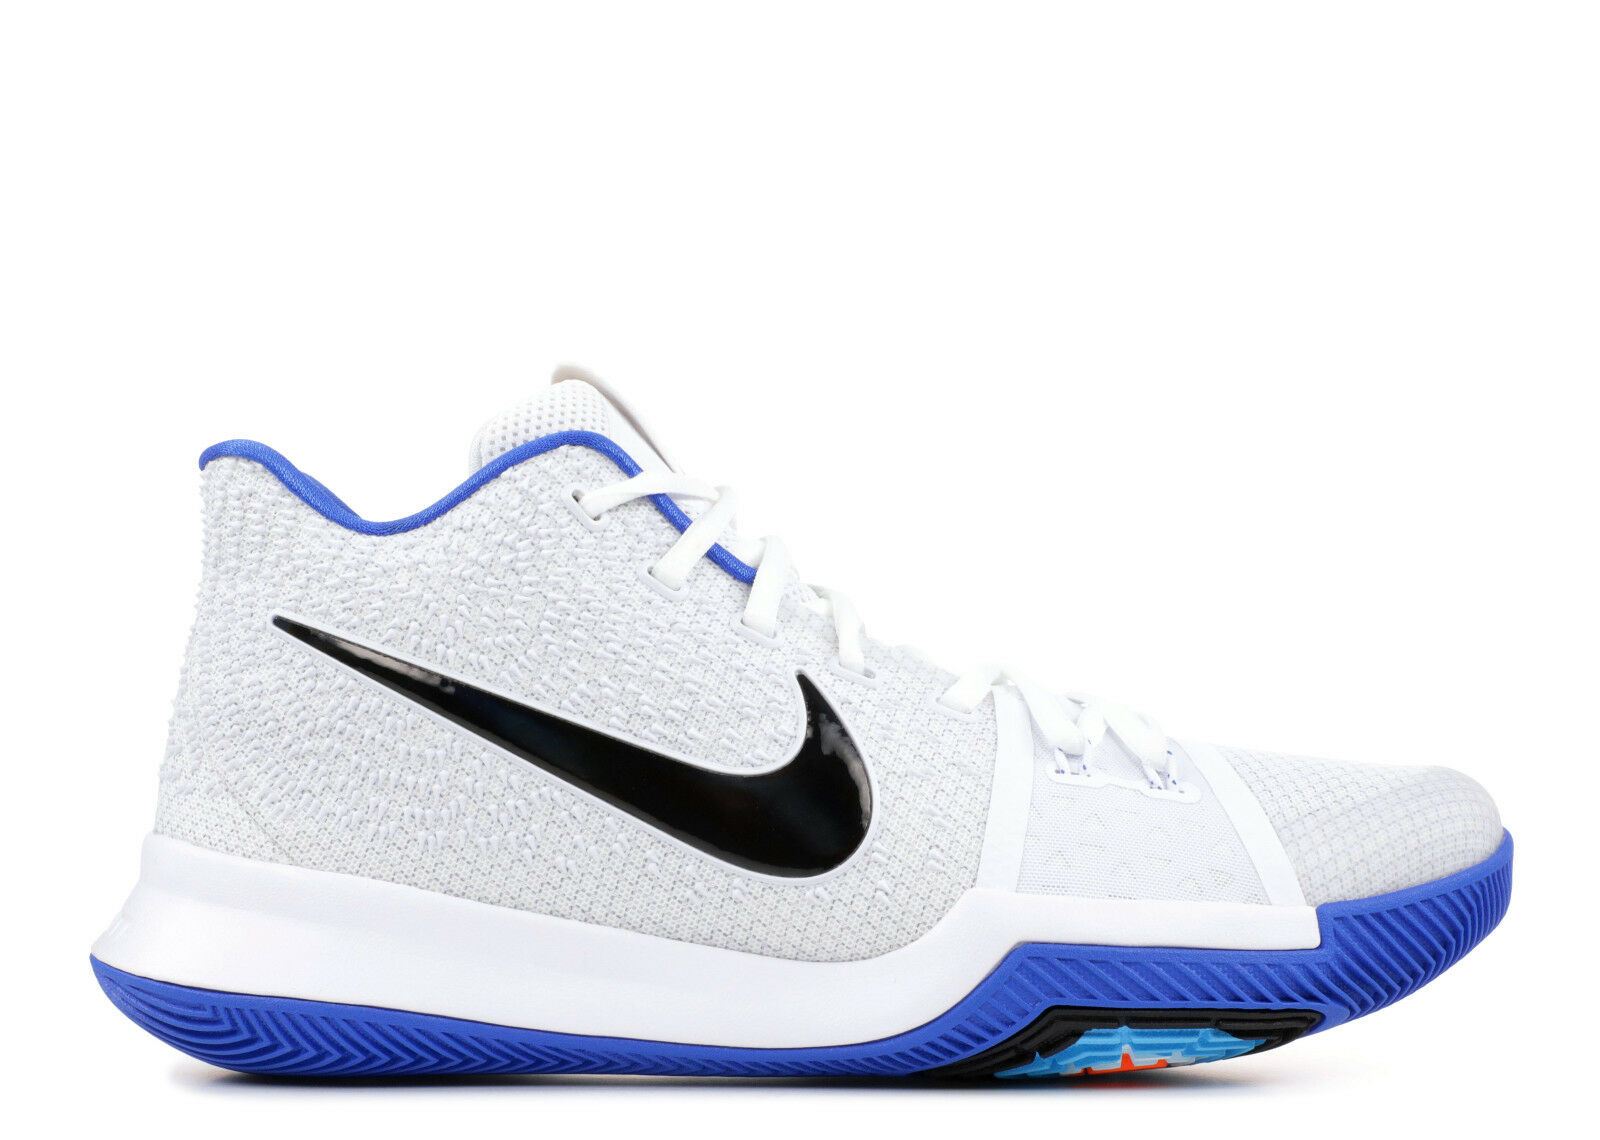 SALE NIKE KYRIE III 3 WHITE BLACK HYPER COBALT blueE SZ 14 852395 102 NEW DUKE